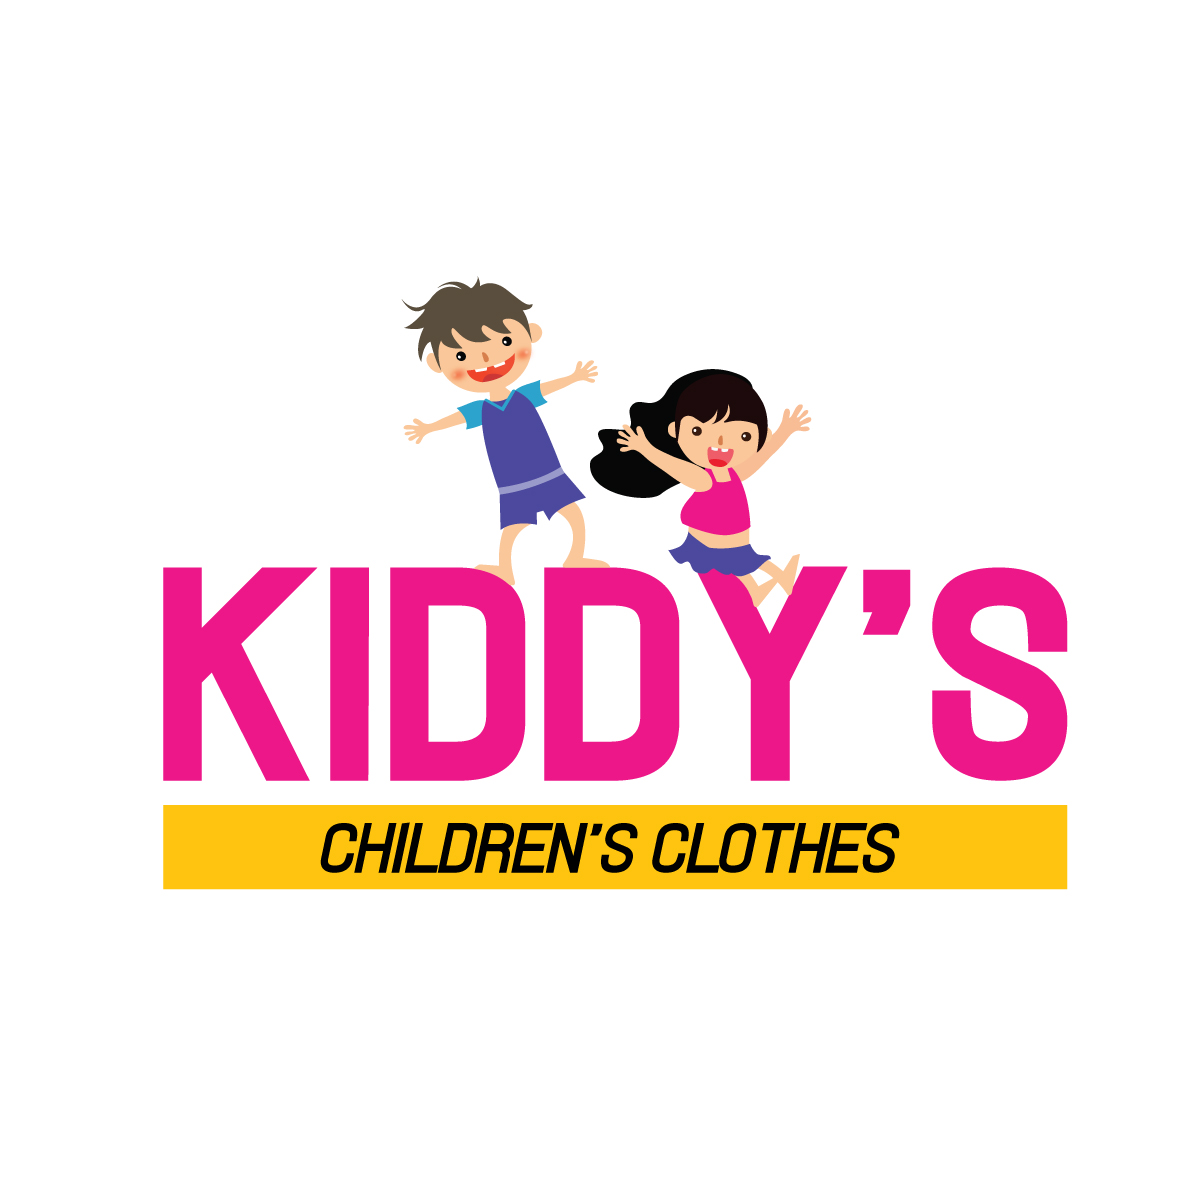 kids clothing boutique gets impressive logo design